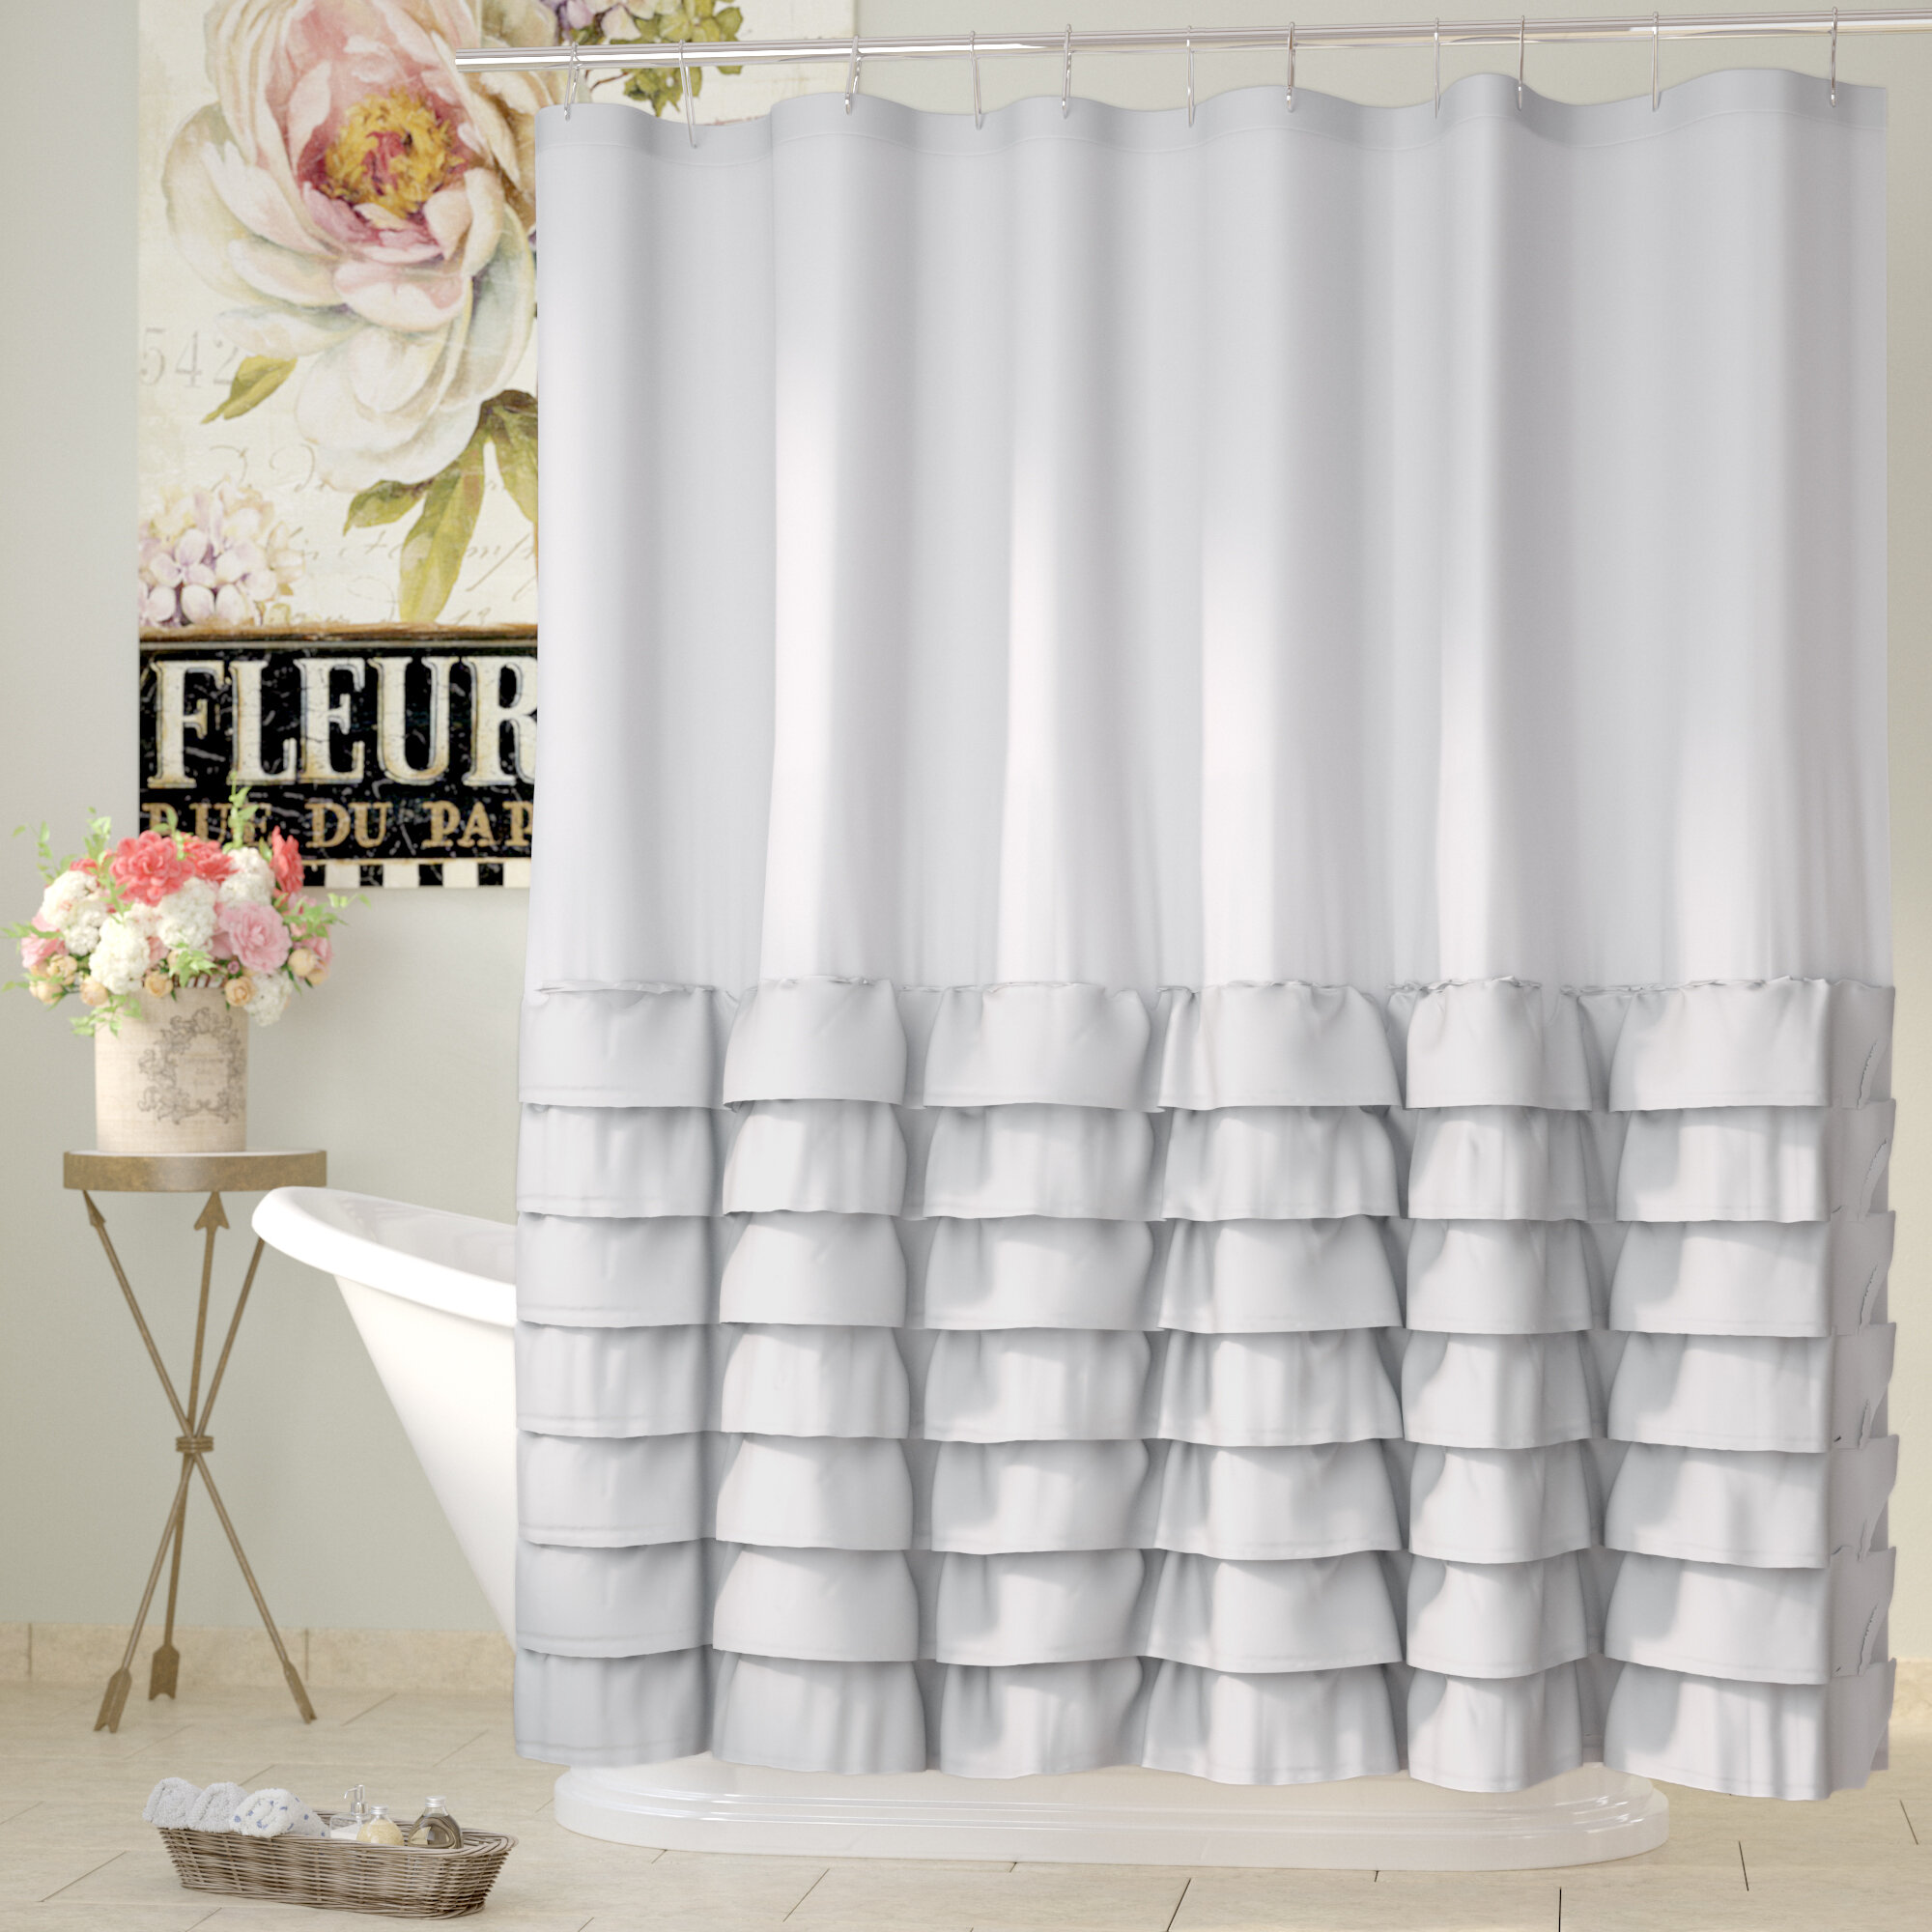 Polyester Butterfly Shower Curtain Bath Curtains Set Curtain Hanging Panel#1